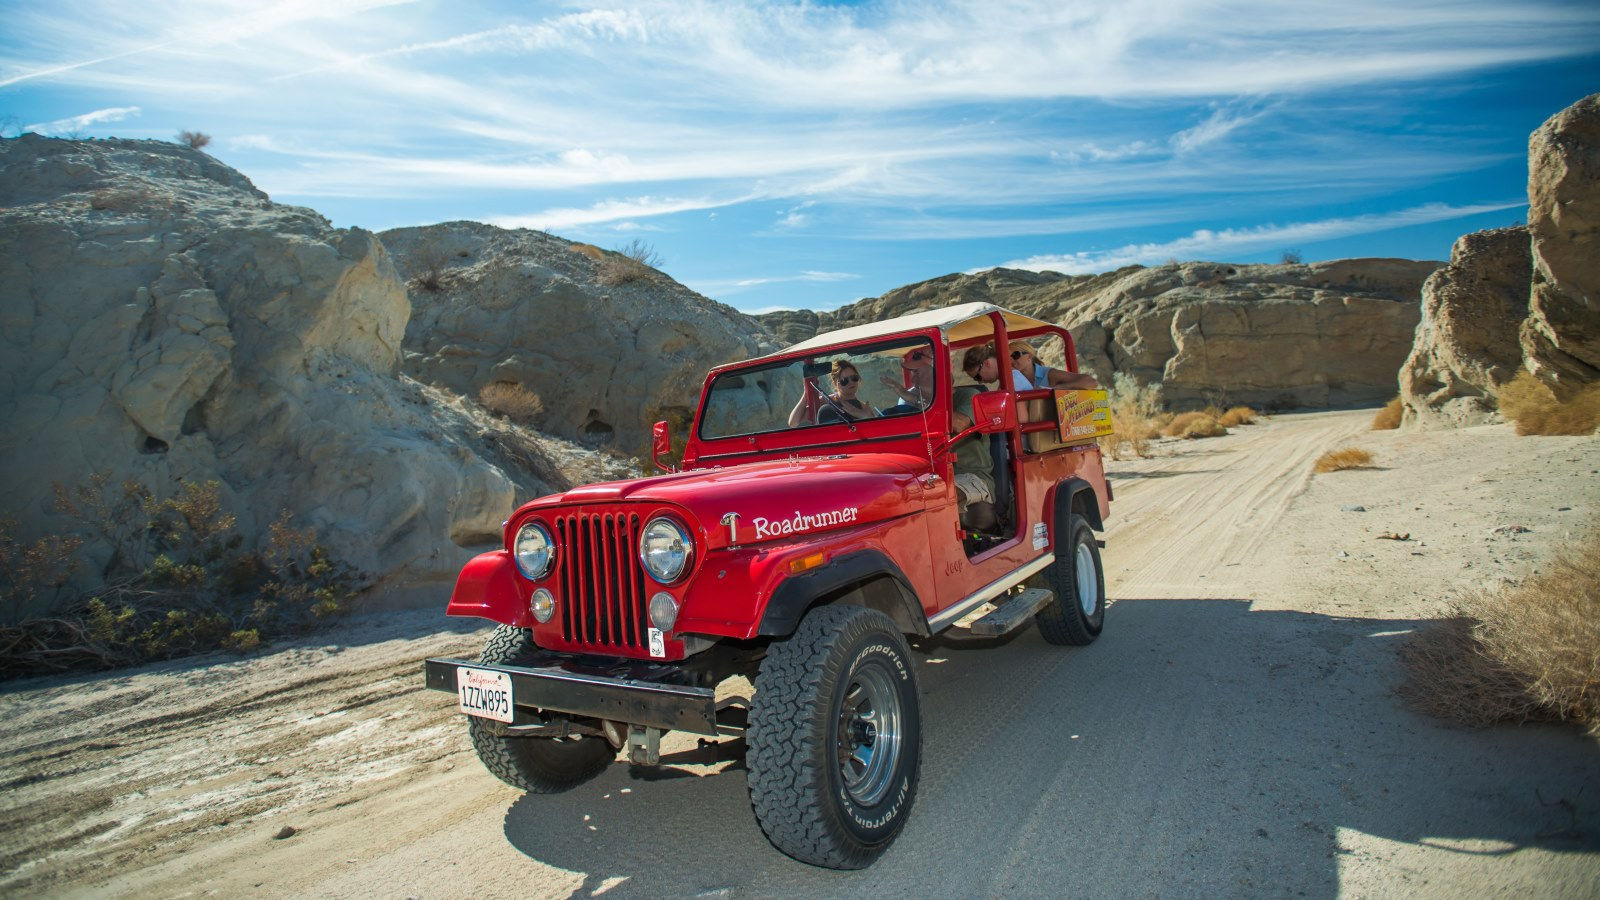 Palm Springs Attractions - Desert Adventures